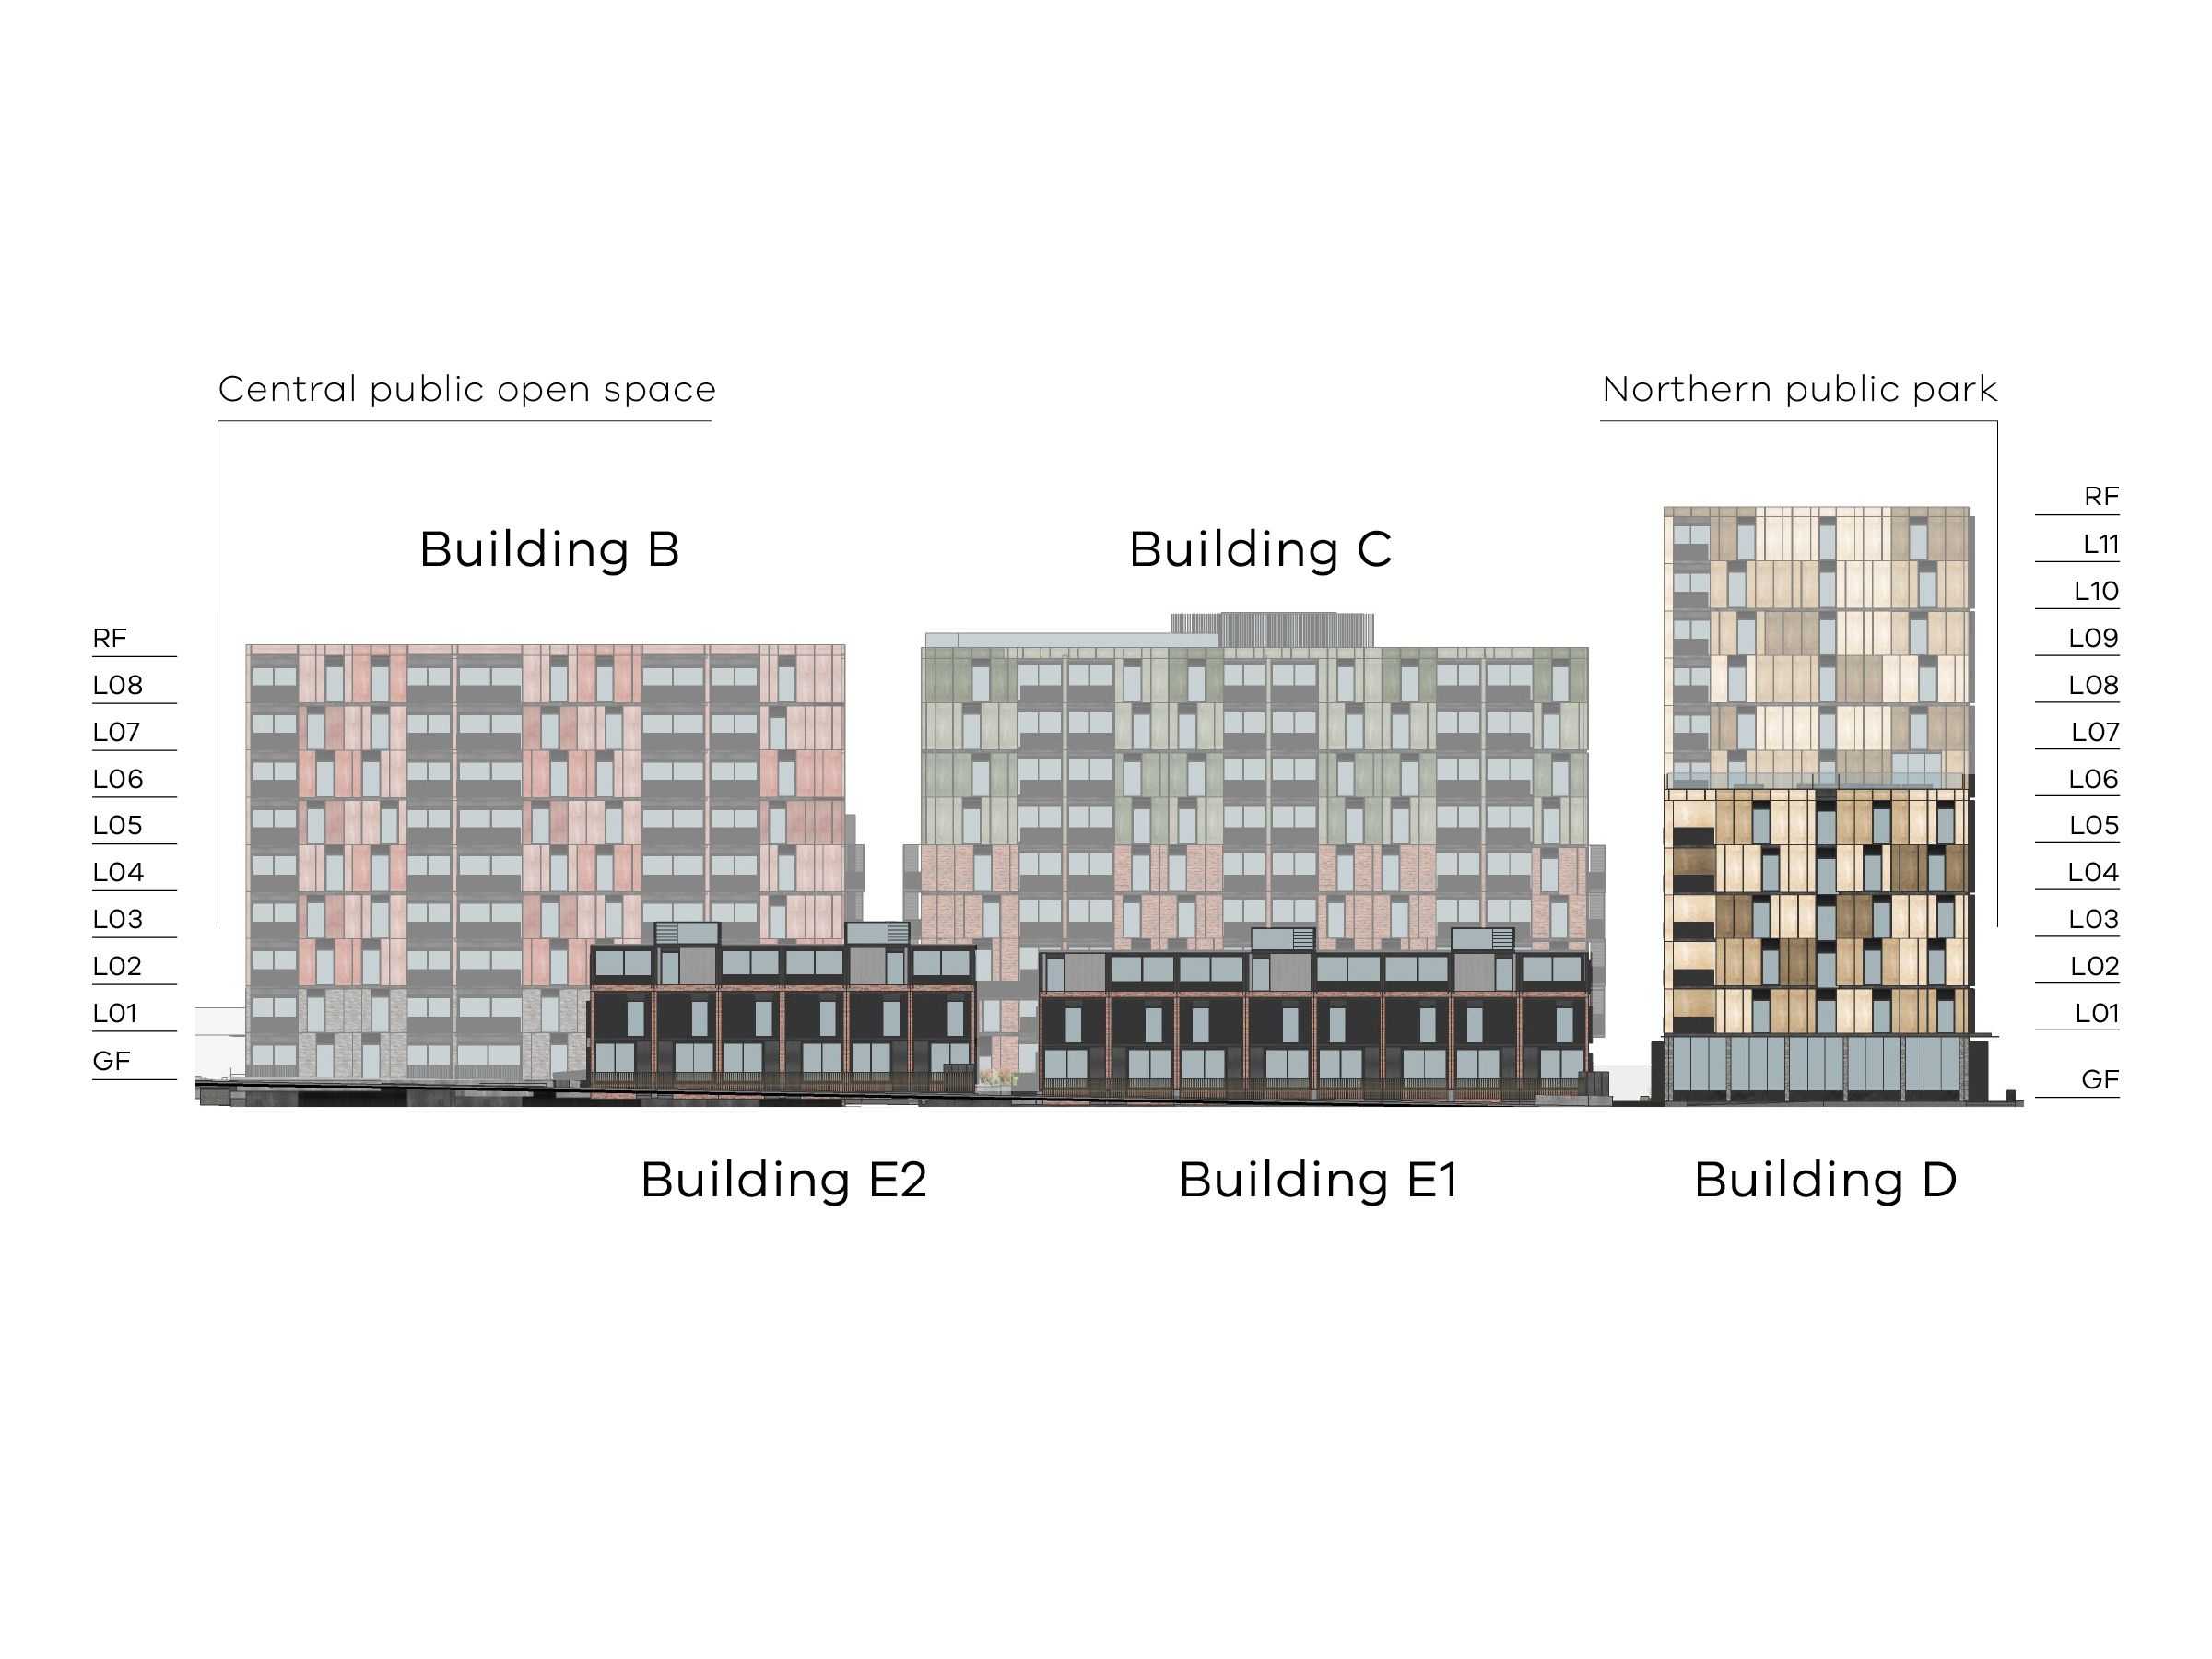 Diagram showing the heights of buildings D, E1 and E2 as seen from Bendigo Street. Buildings B and C can be seen behind E1 and E2. The facade of building D facing Bendigo Street has a ground floor, level 1-5 and a flat roof. The rest of building D has a ground floor, level 1-11 and a flat roof. Buildings E1 and E2 have a ground floor, level 1-2 and a flat roof. Buildings B and C in the background have  a ground floor, level 1-8 and a flat roof.